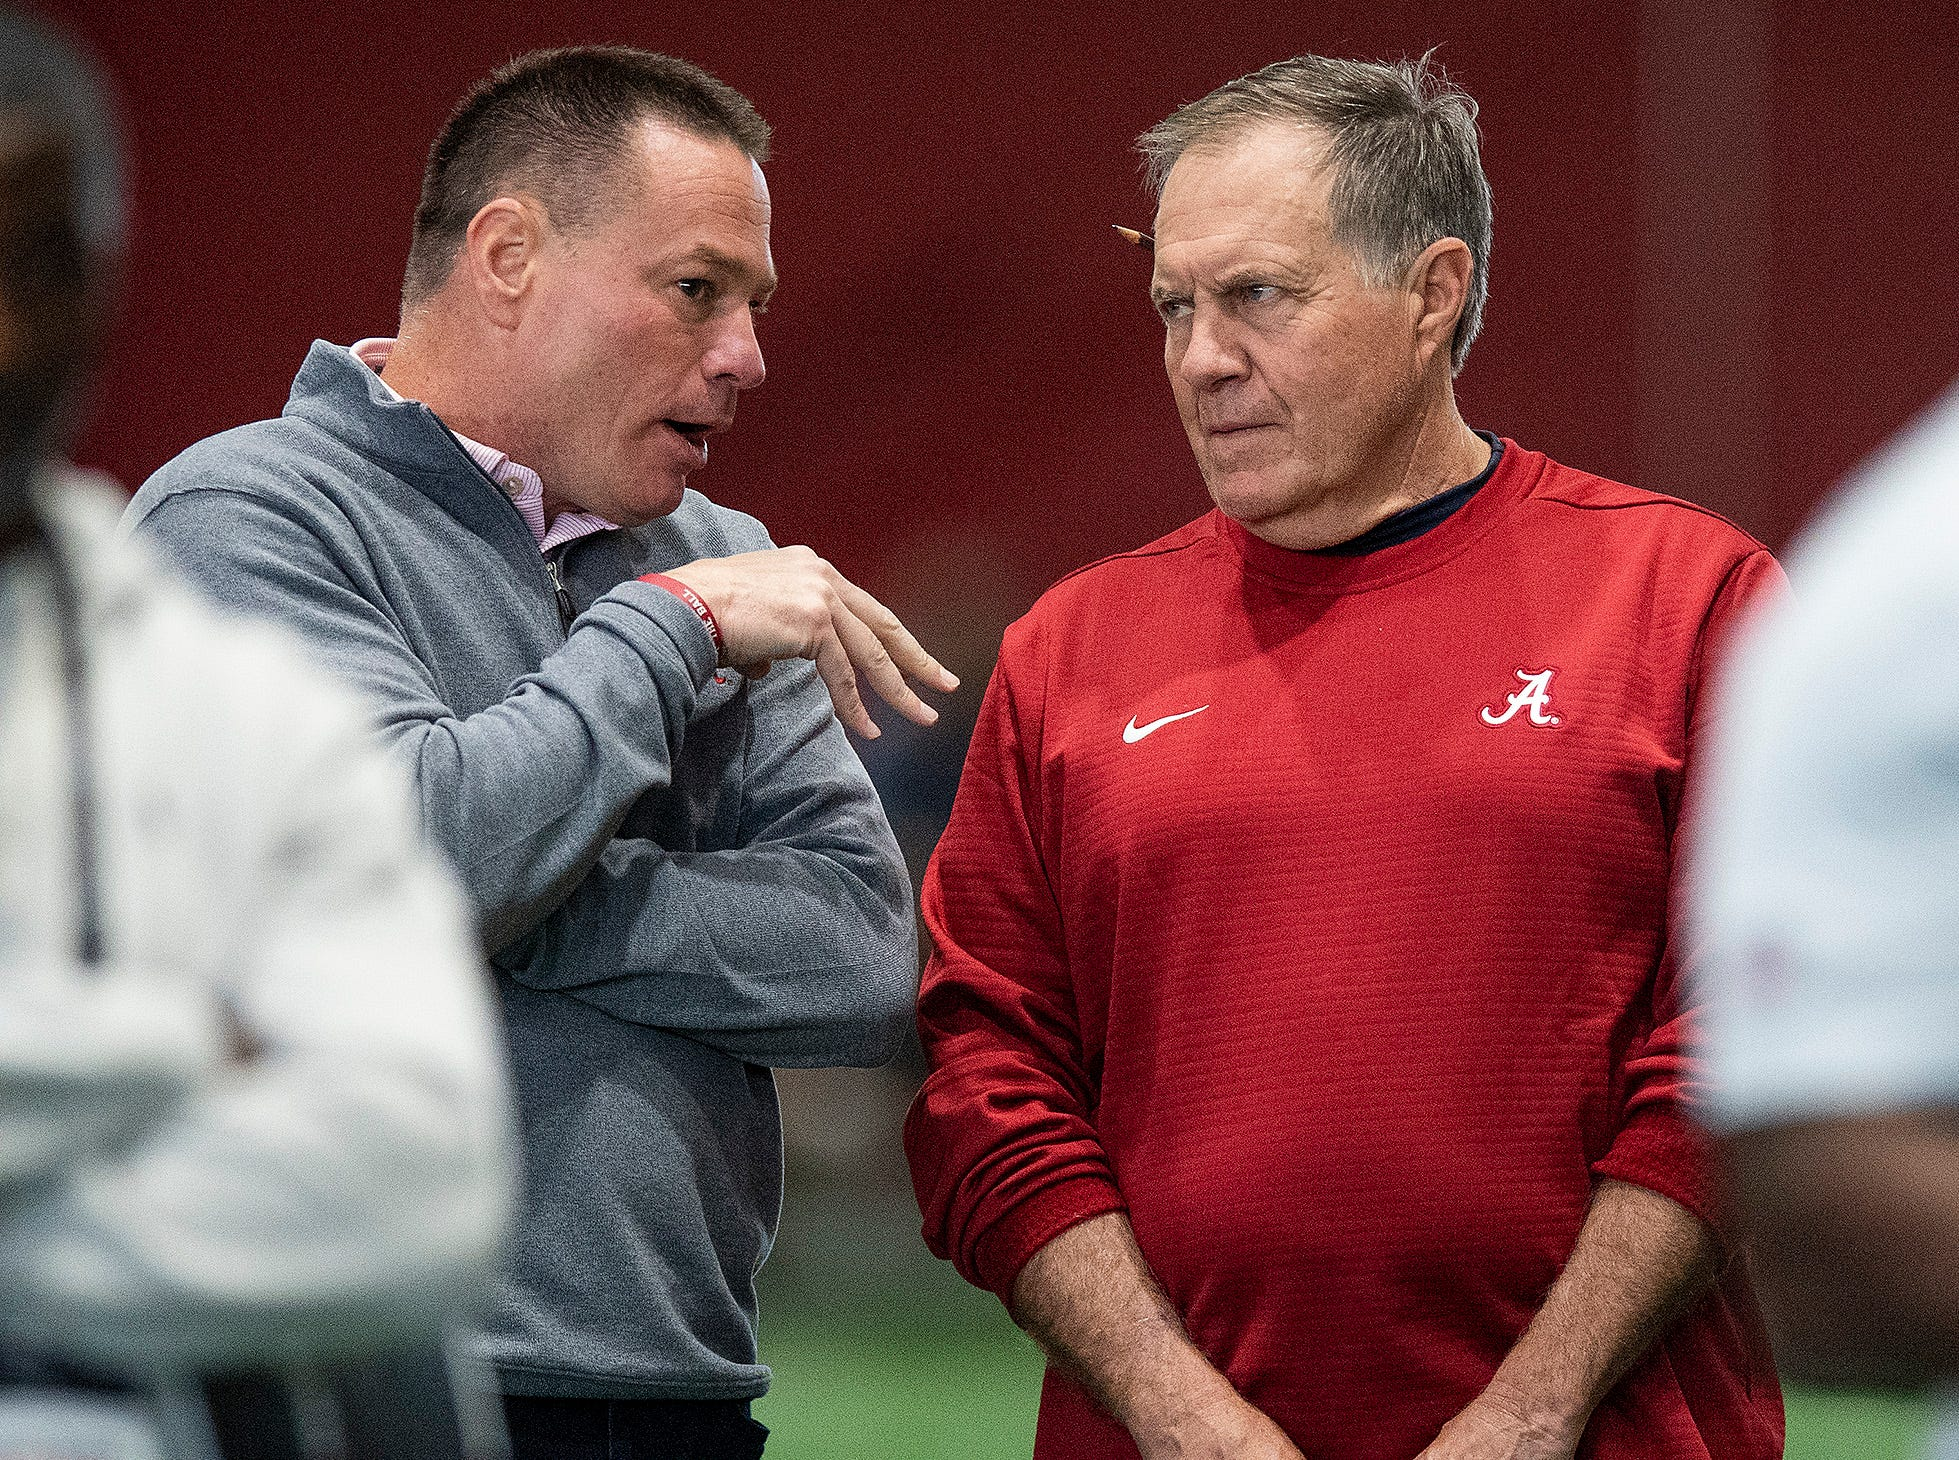 Alabama's Butch Jones, left, talks with New England Patriots coach Bill Belichick during Pro Day on the University of Alabama campus in Tuscaloosa, Ala., on Tuesday March 19, 2019.